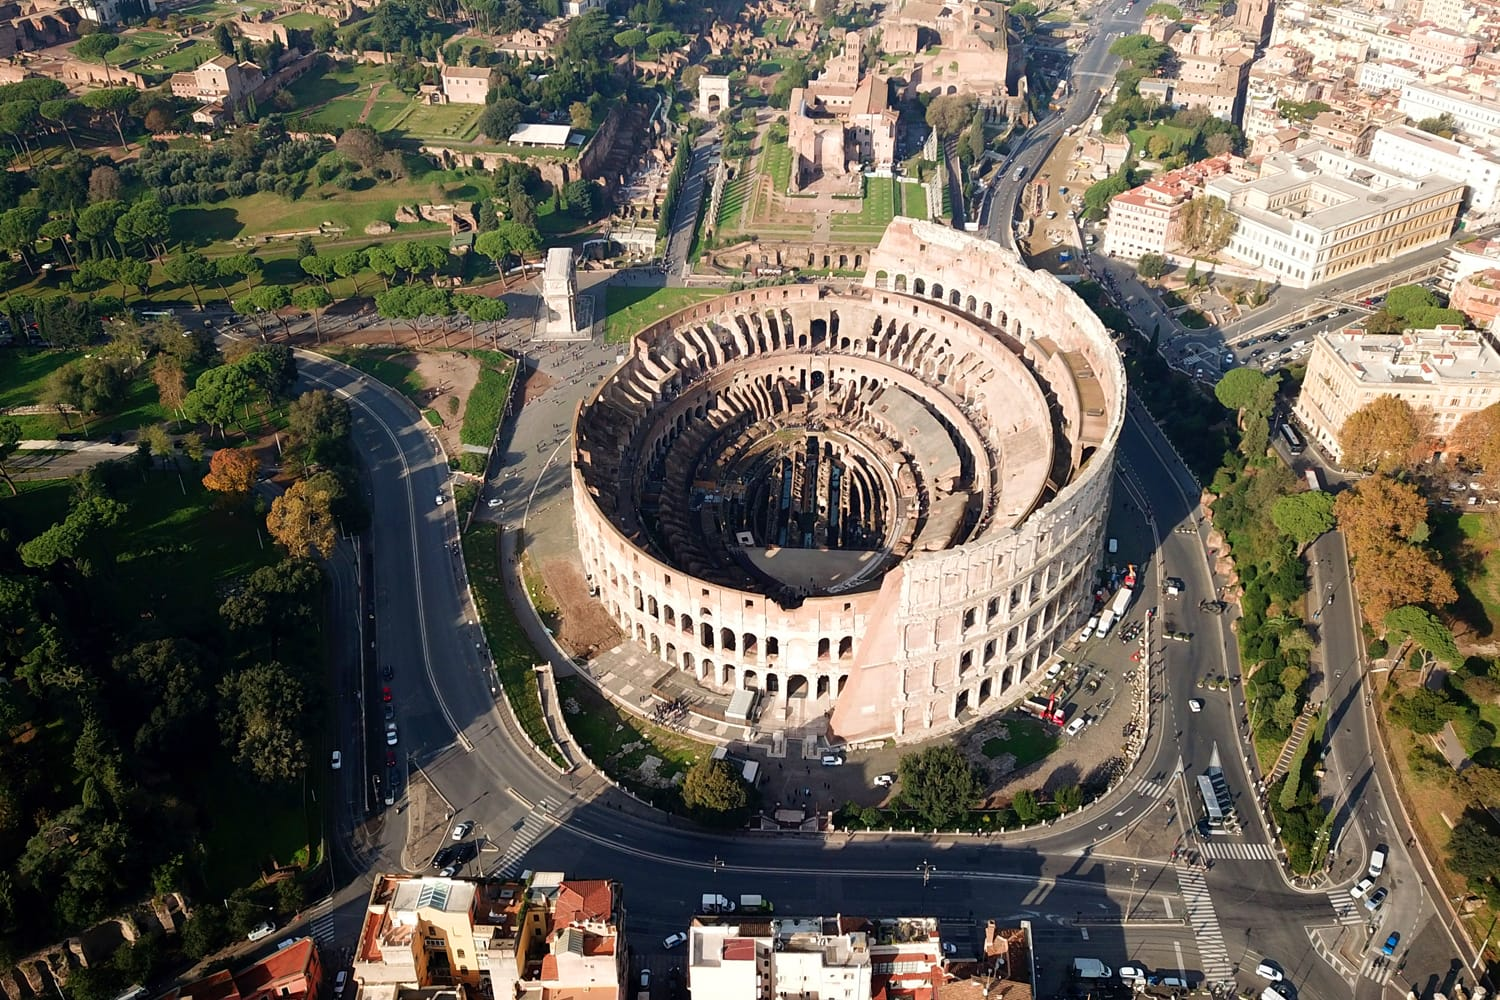 Aerial drone view of iconic and beautiful ancient Arena of Colosseum, also known as the Flavian amphitheatre in the heart of Rome, Italy